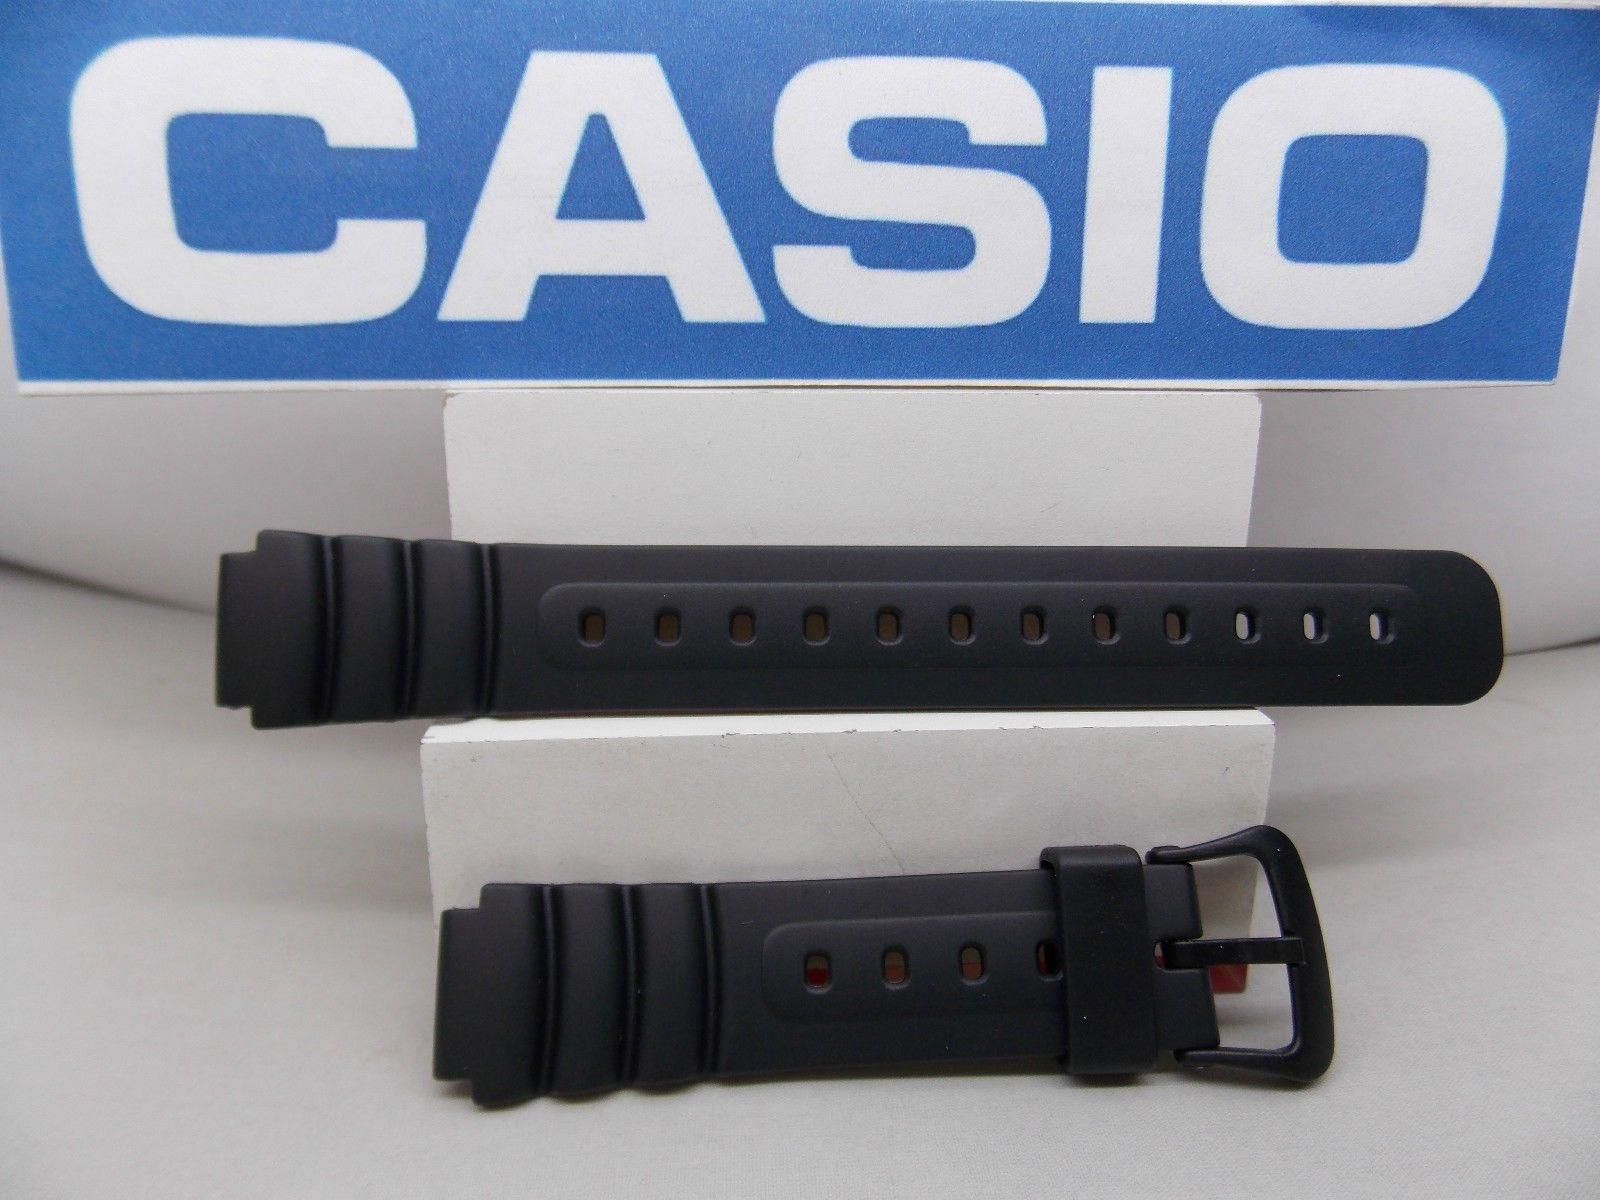 Casio watchband LW-22 Lady 14mm black Resin sport watchband with spring bars